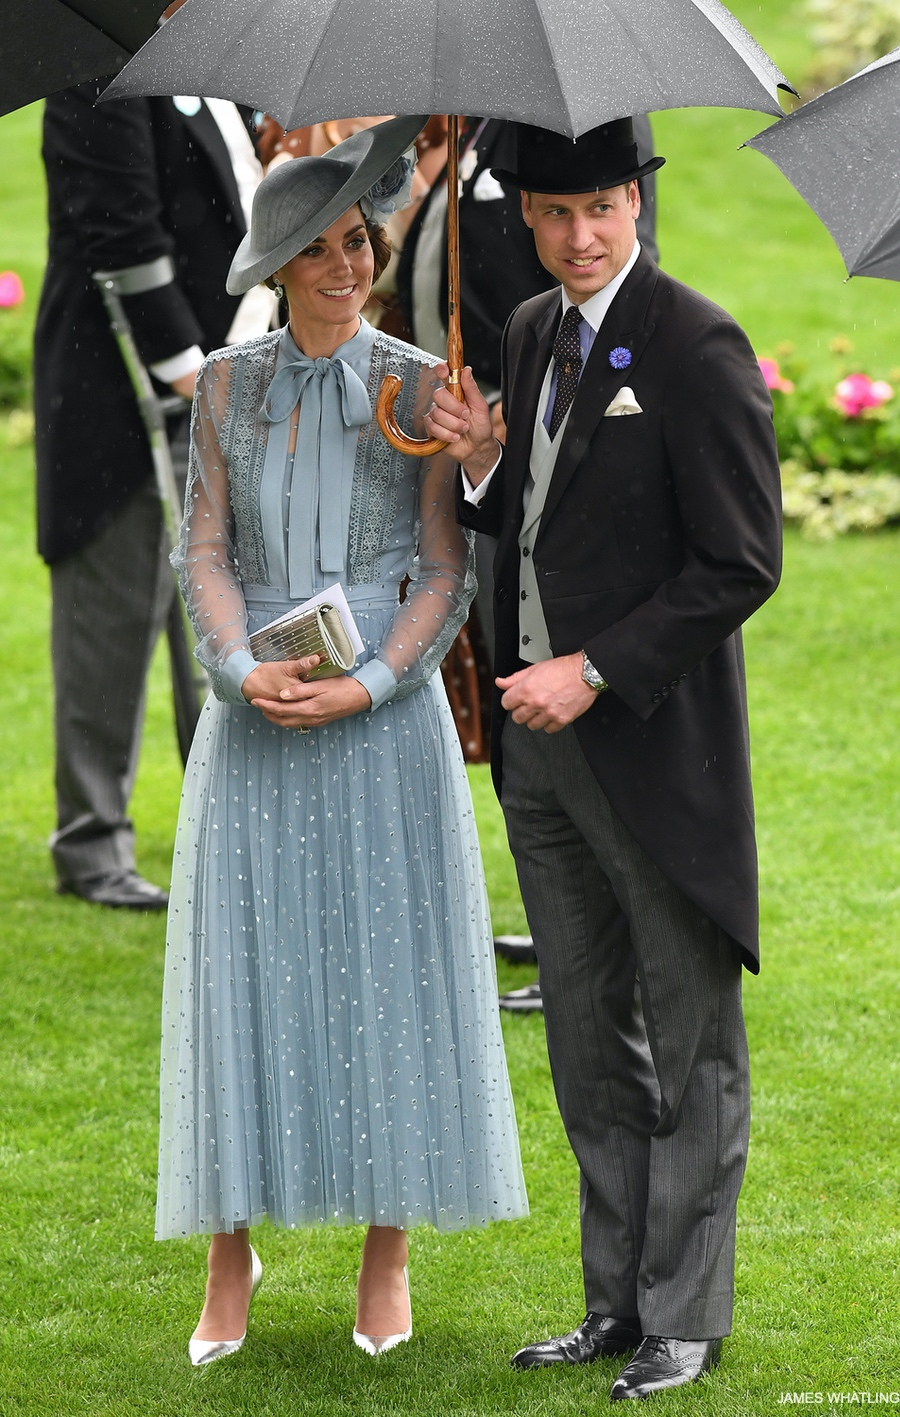 The Duke and Duchess of Cambridge together at Royal Ascot.